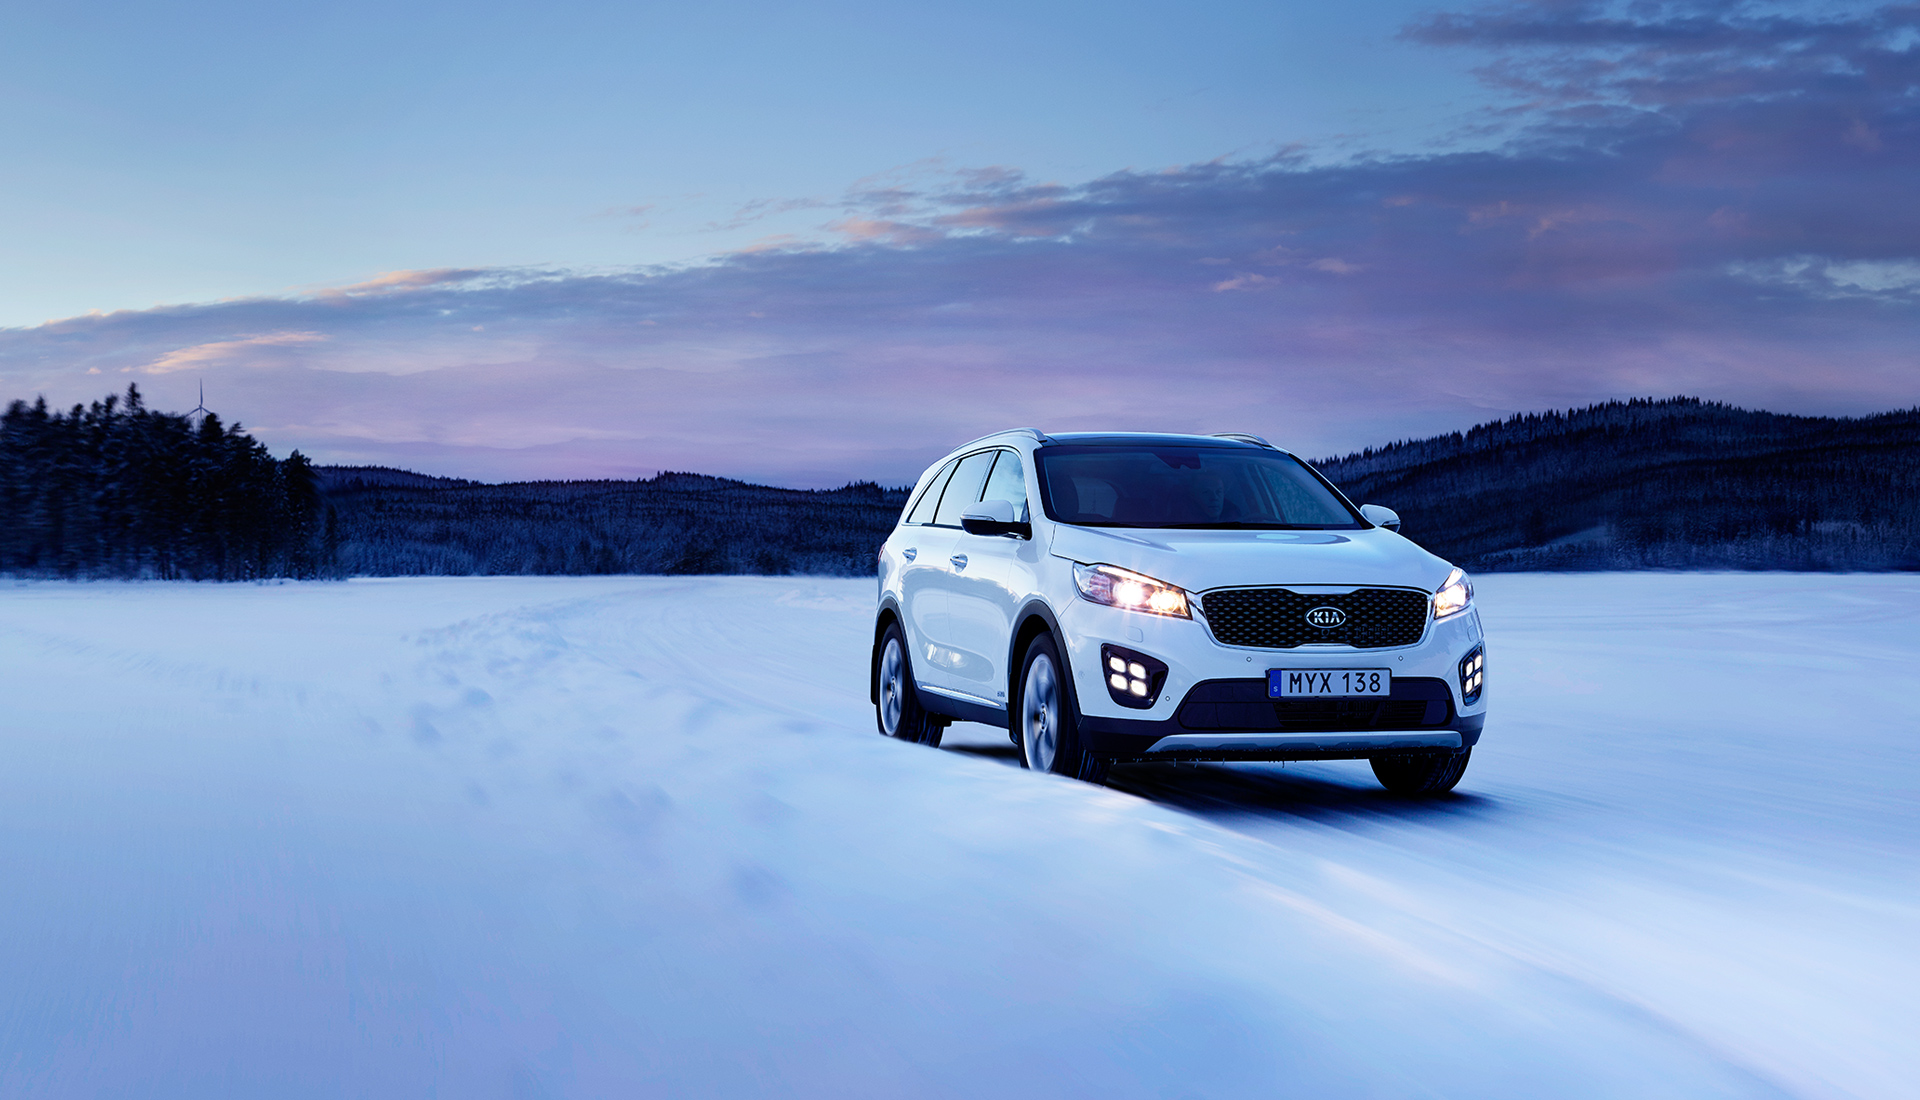 Kia Sorento Winter Edition